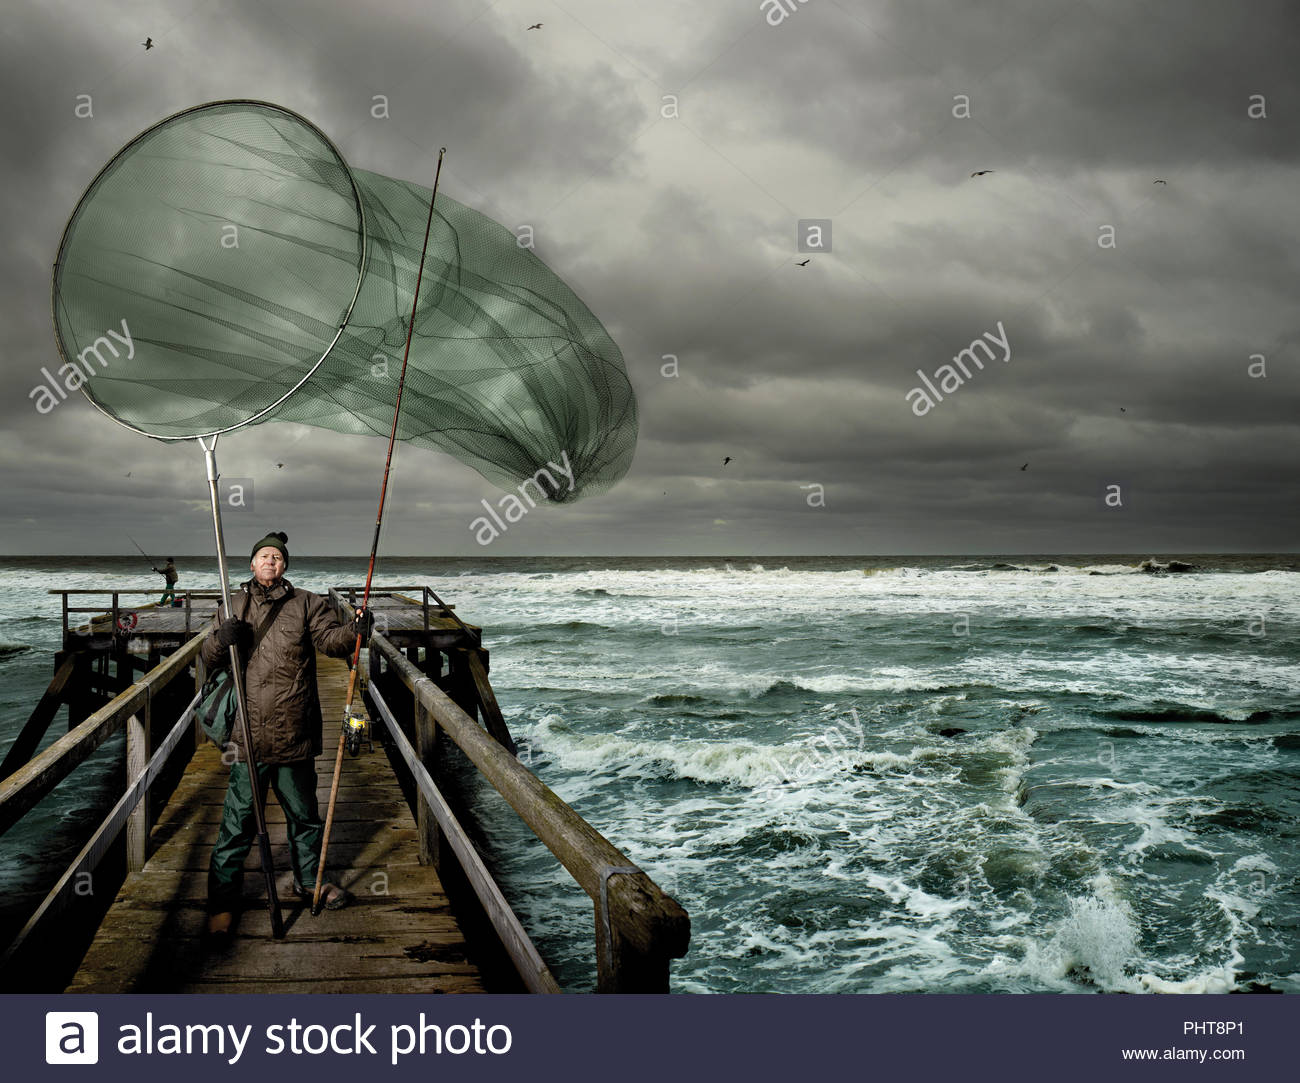 Mautre man on pier with oversized net - Stock Image